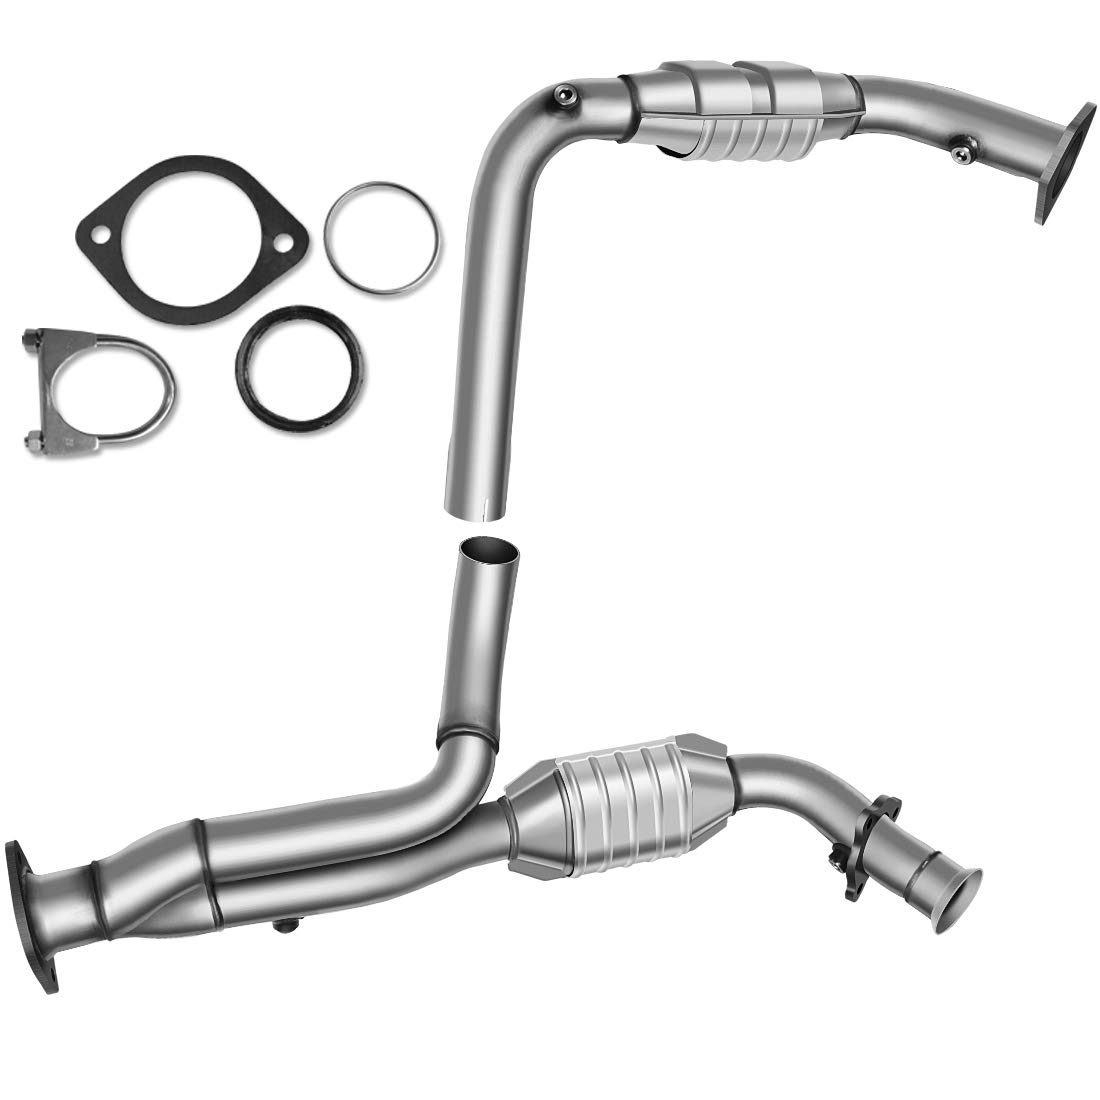 New Catalytic Converter For Chevy Yukon Suburban Silverado 1500 Sierra 07-08